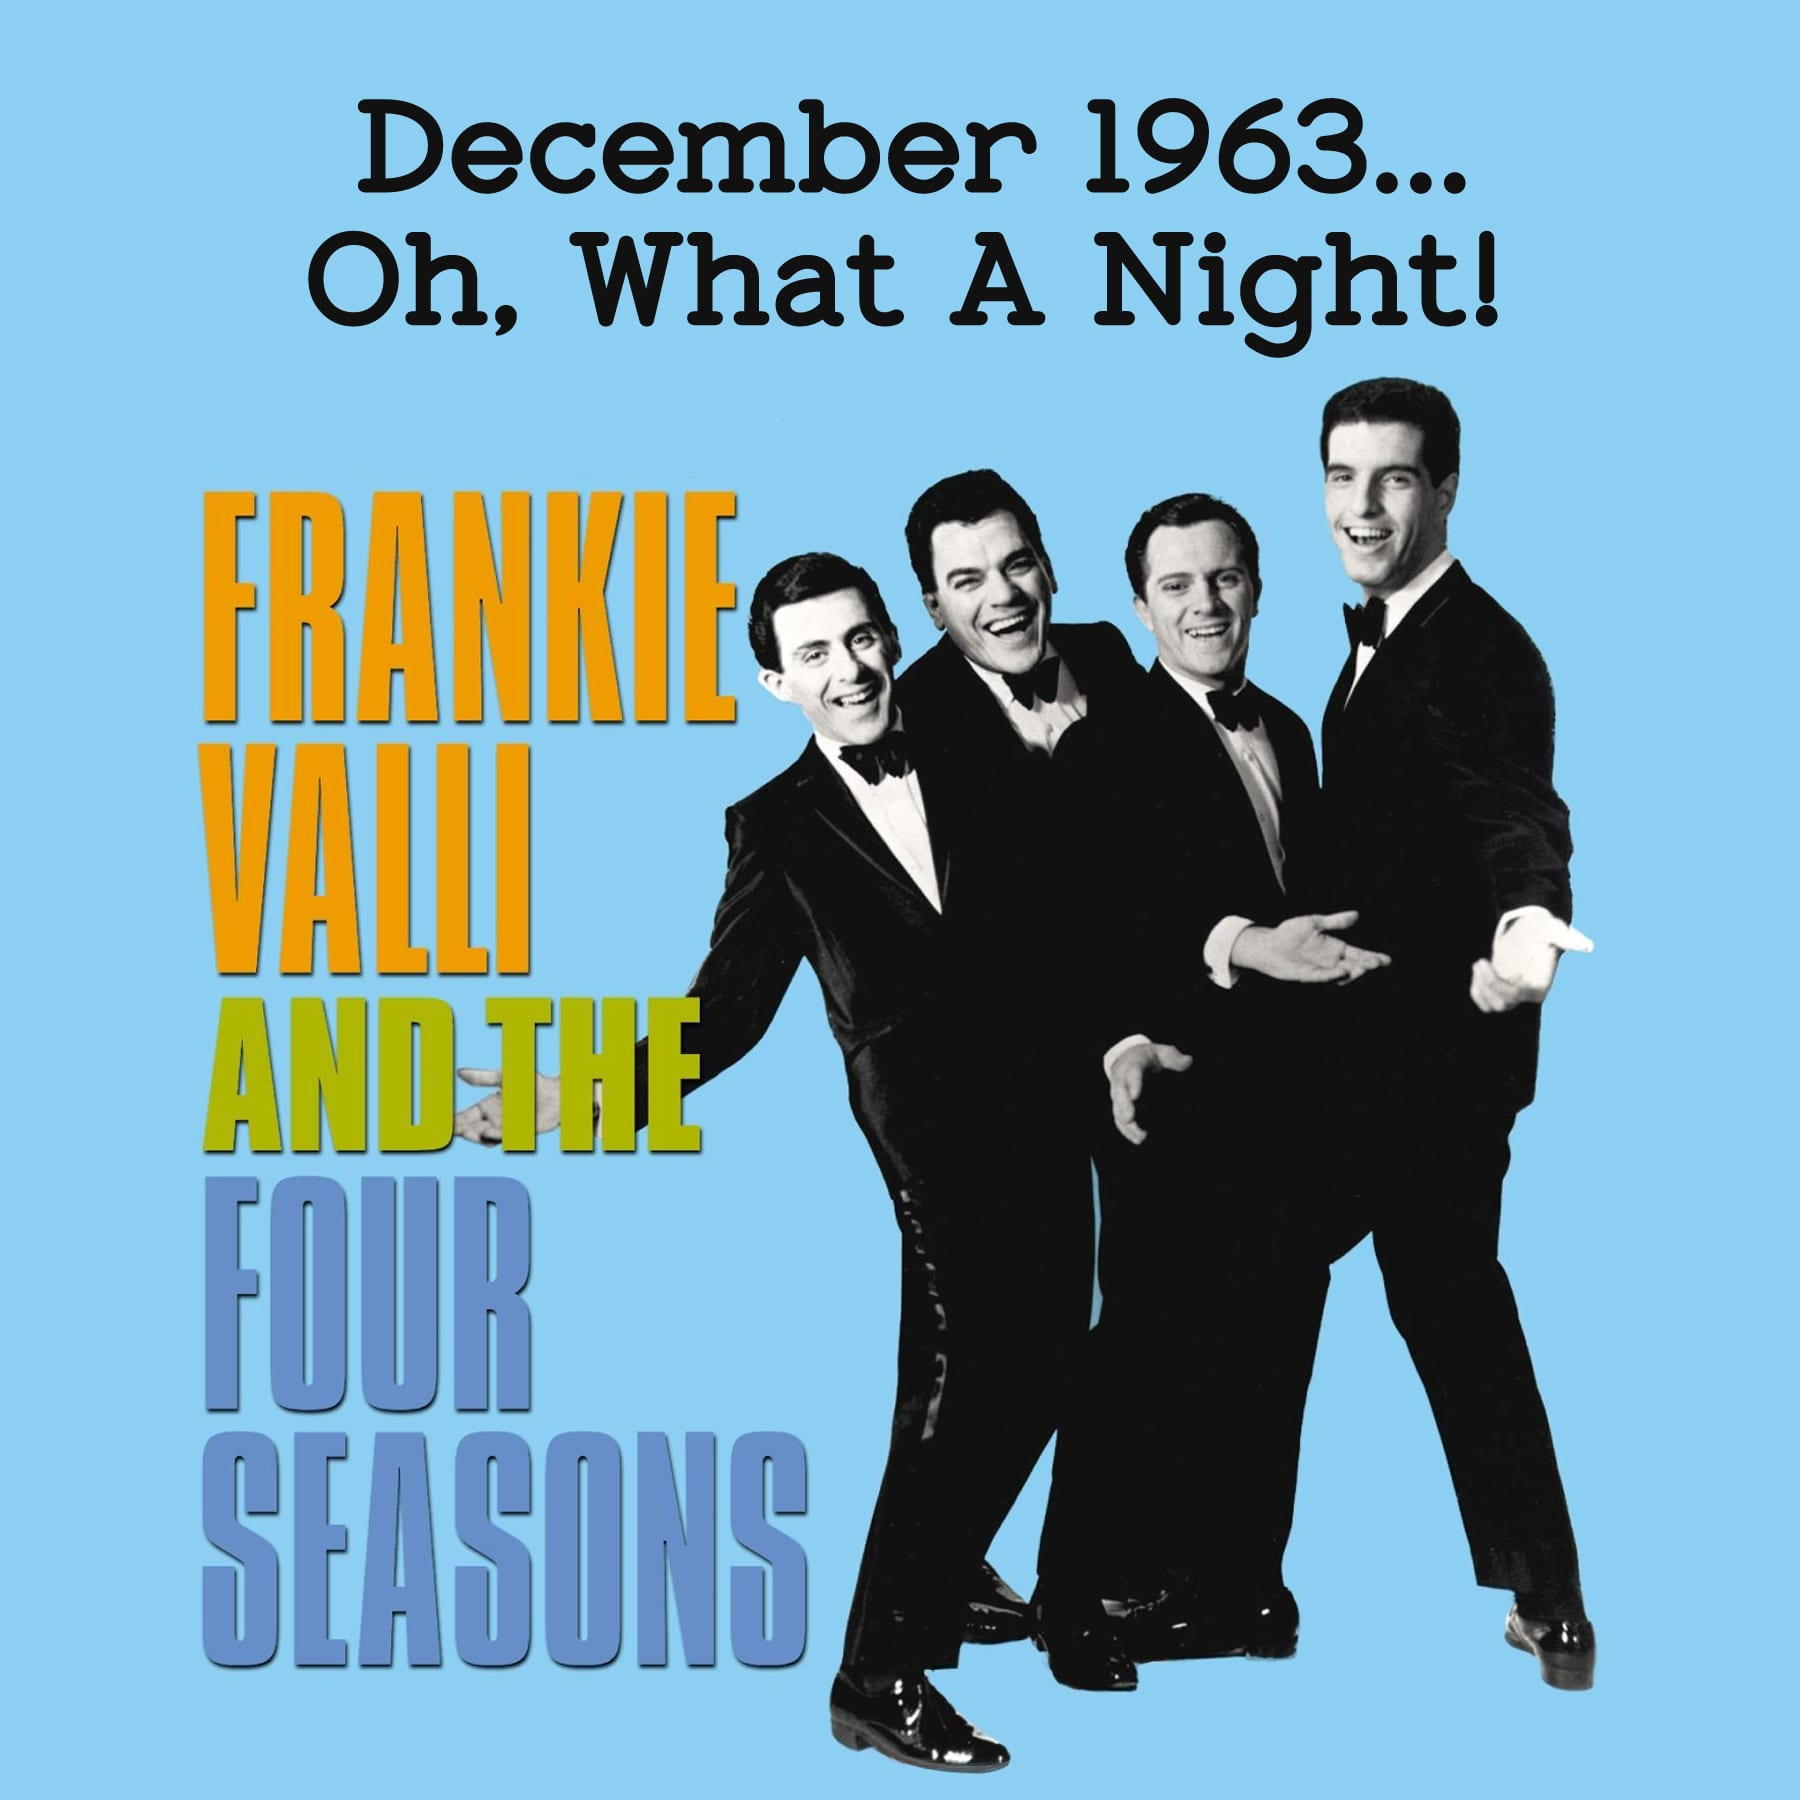 Sing Frankie Valli and The Four Seasons – December 1963 (Oh, What A Night)!